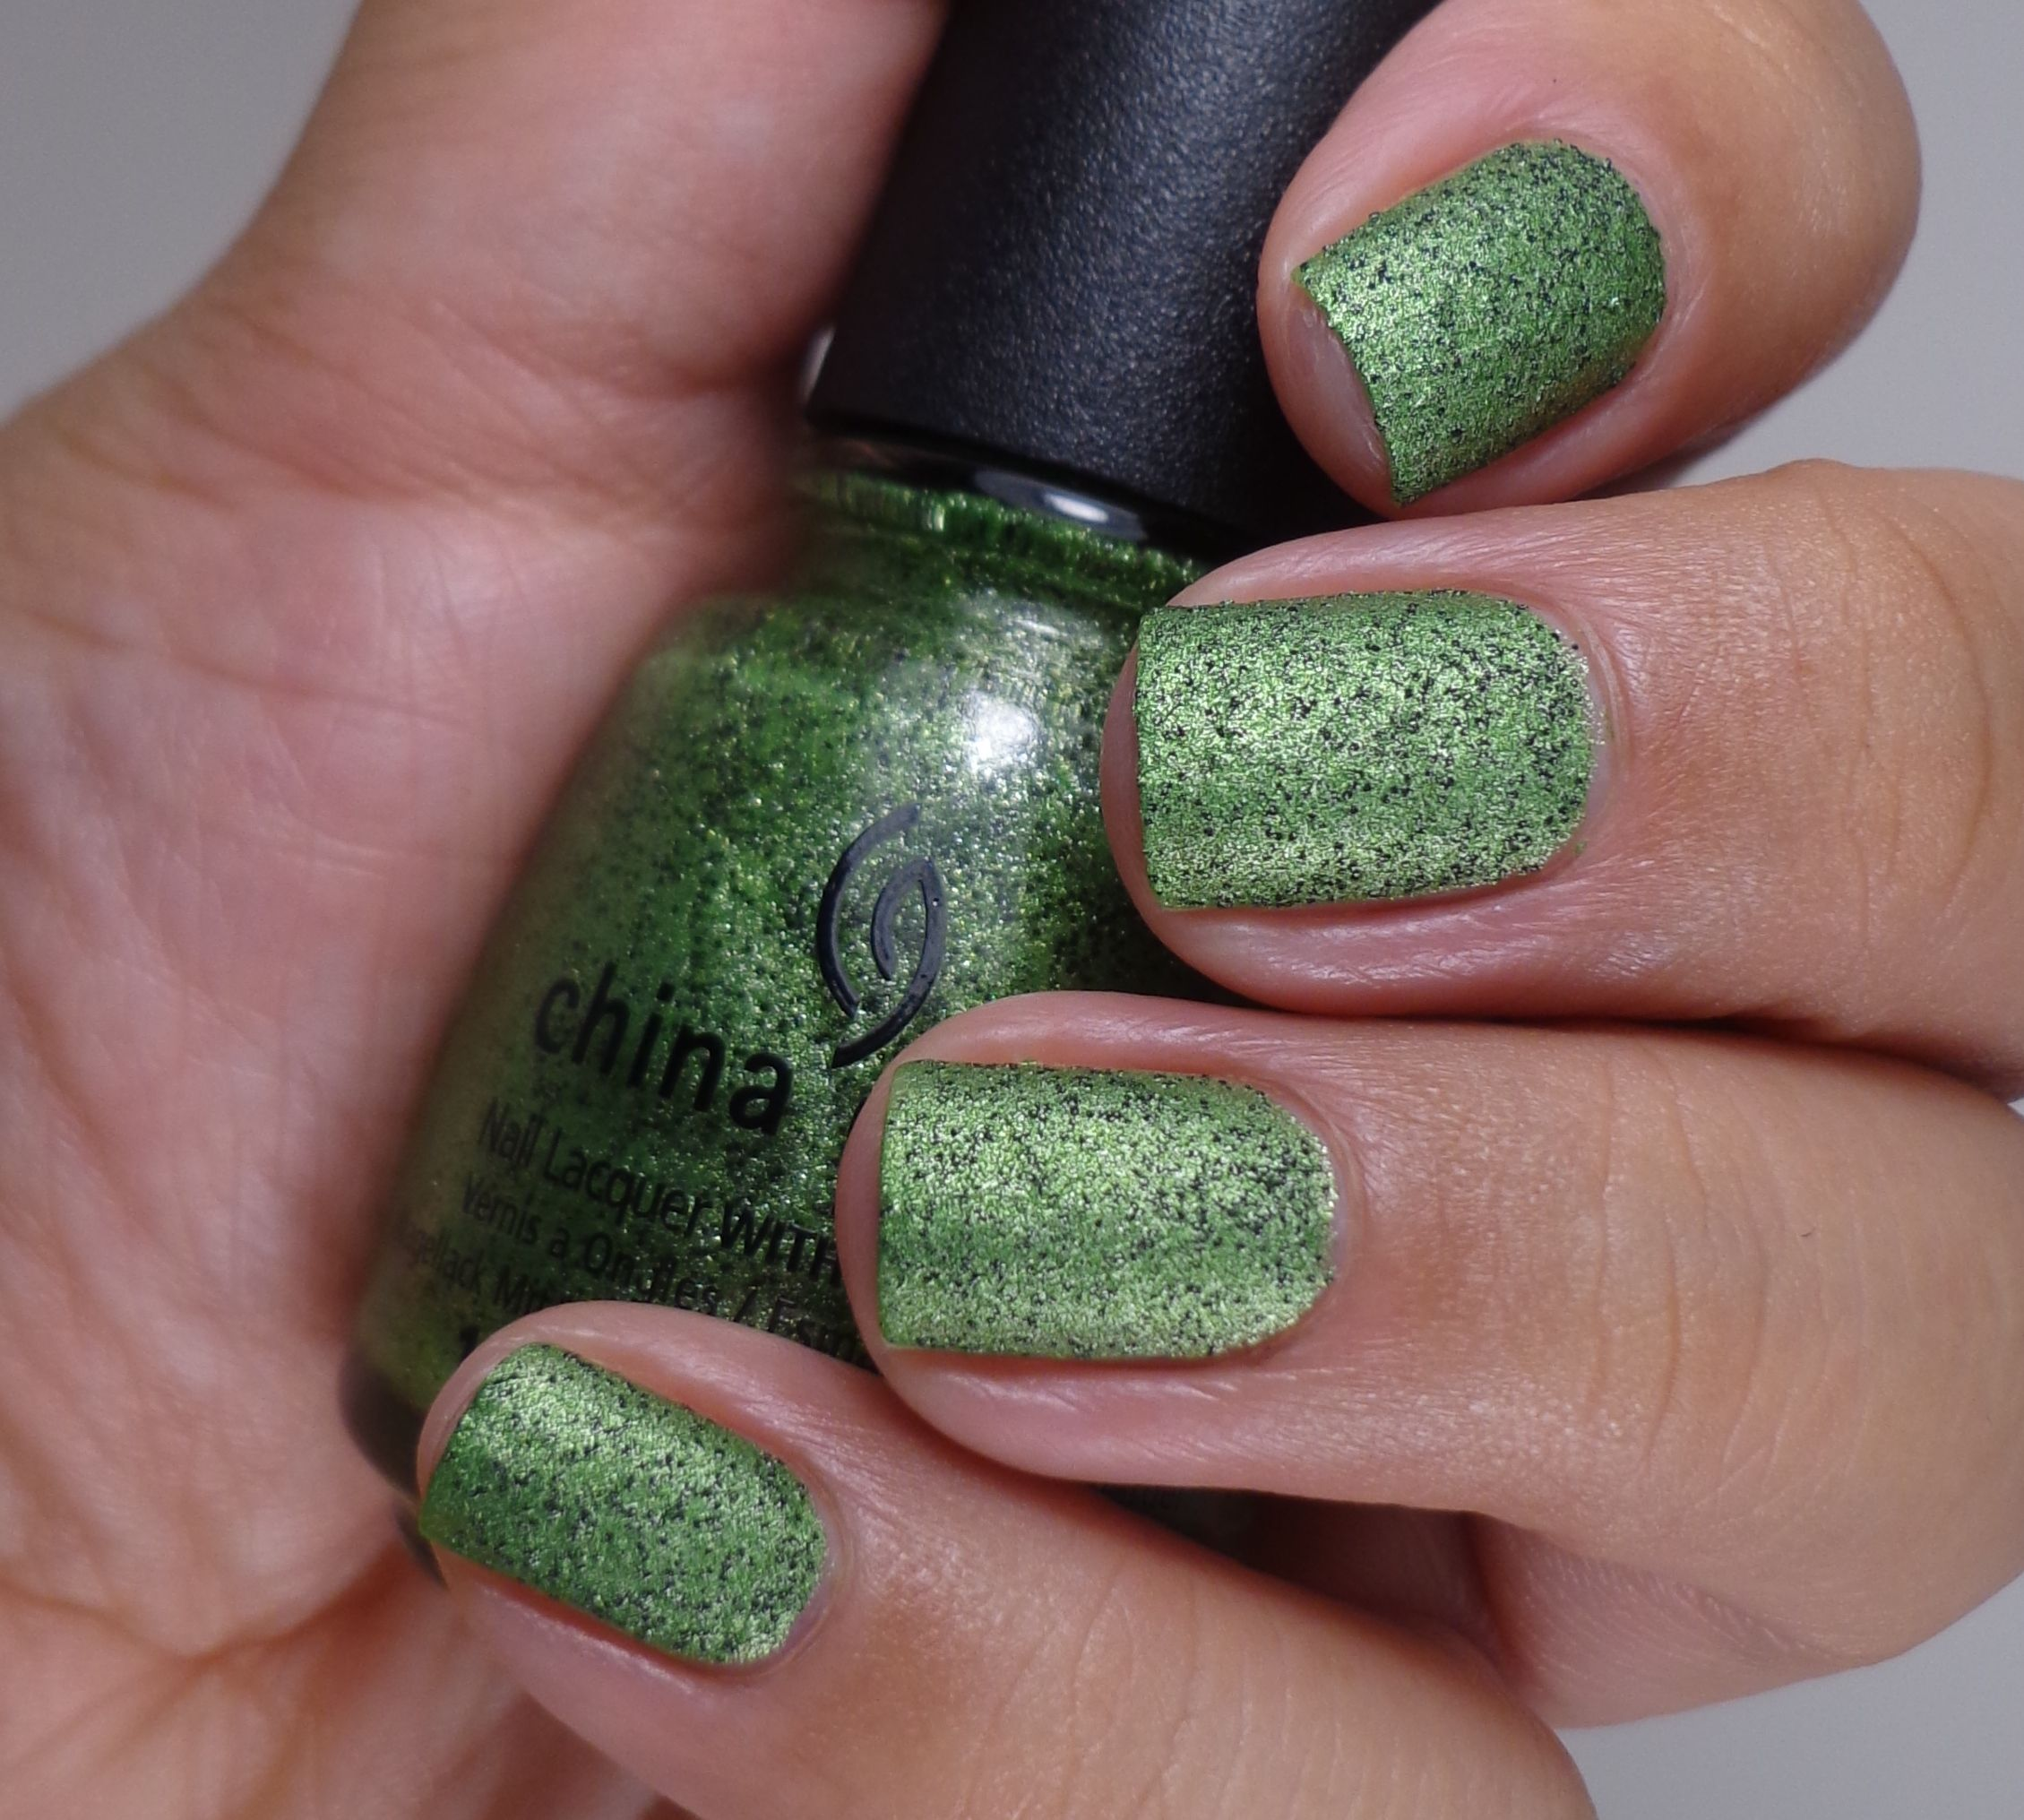 China glaze but of corpse 1 nail polish wants pinterest china glaze but of corpse green textured nail polish from the china glaze apocalypse of color collection halloween 2014 nvjuhfo Gallery